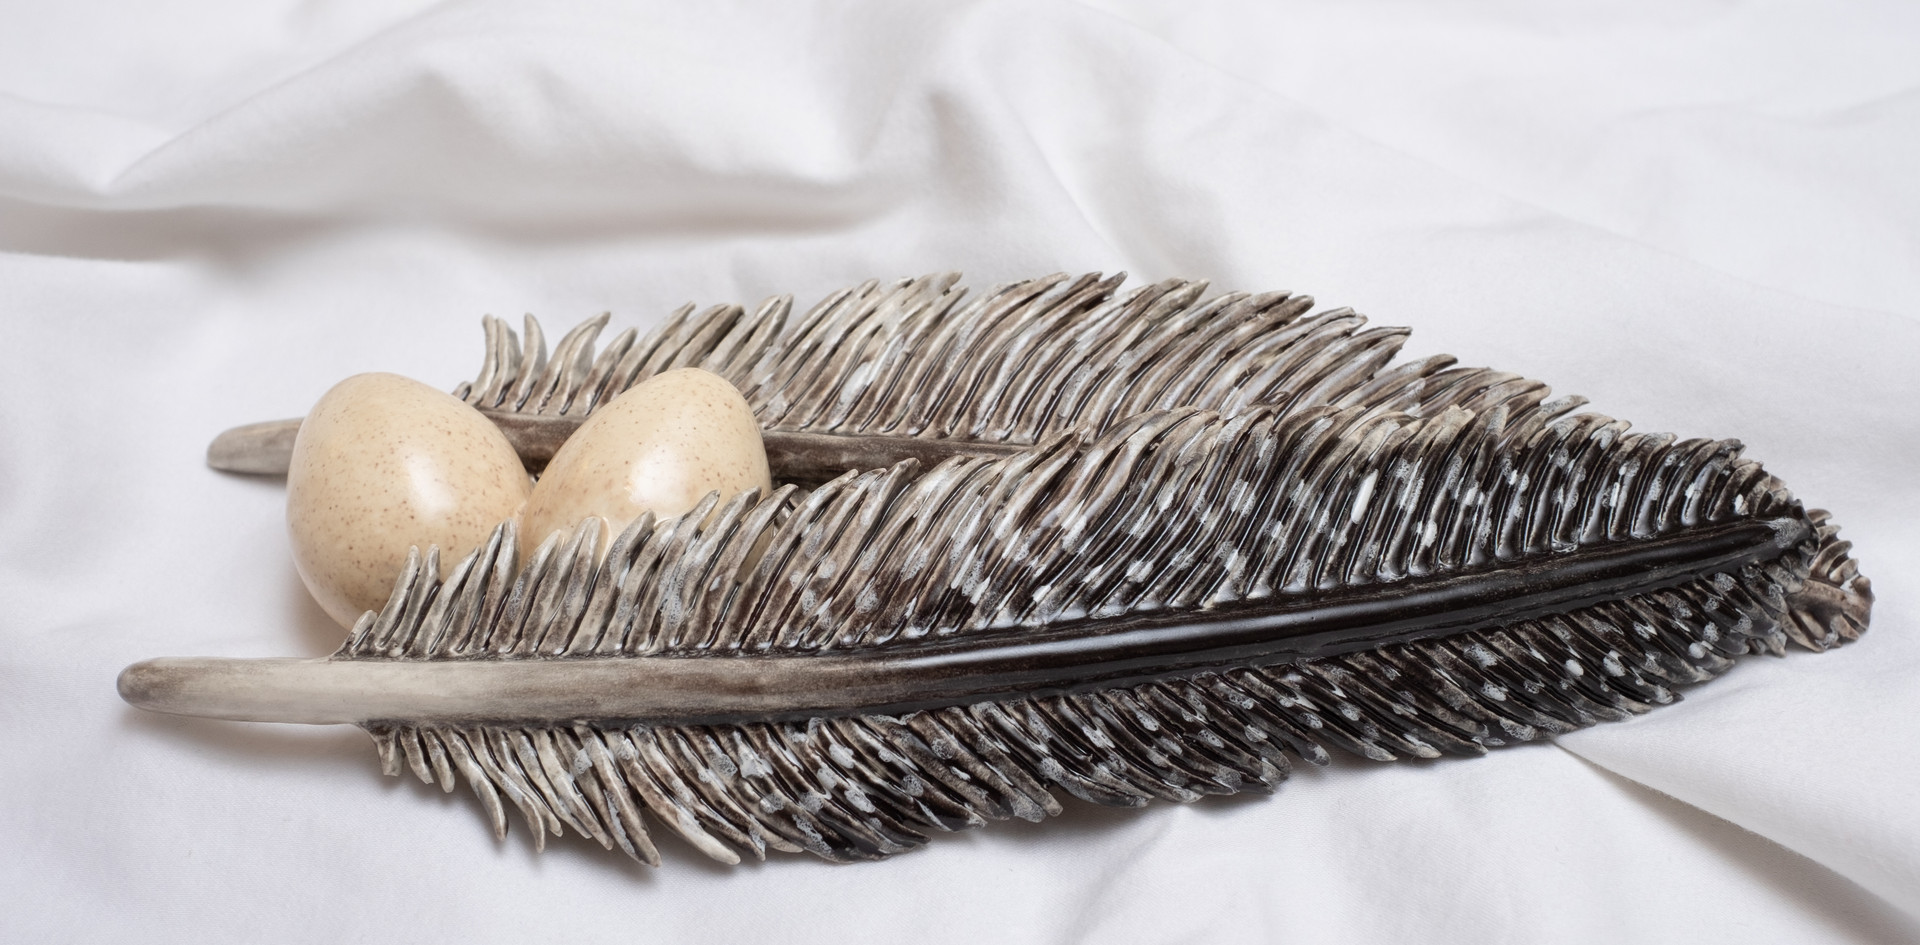 Guinea fowl feathers and eggs